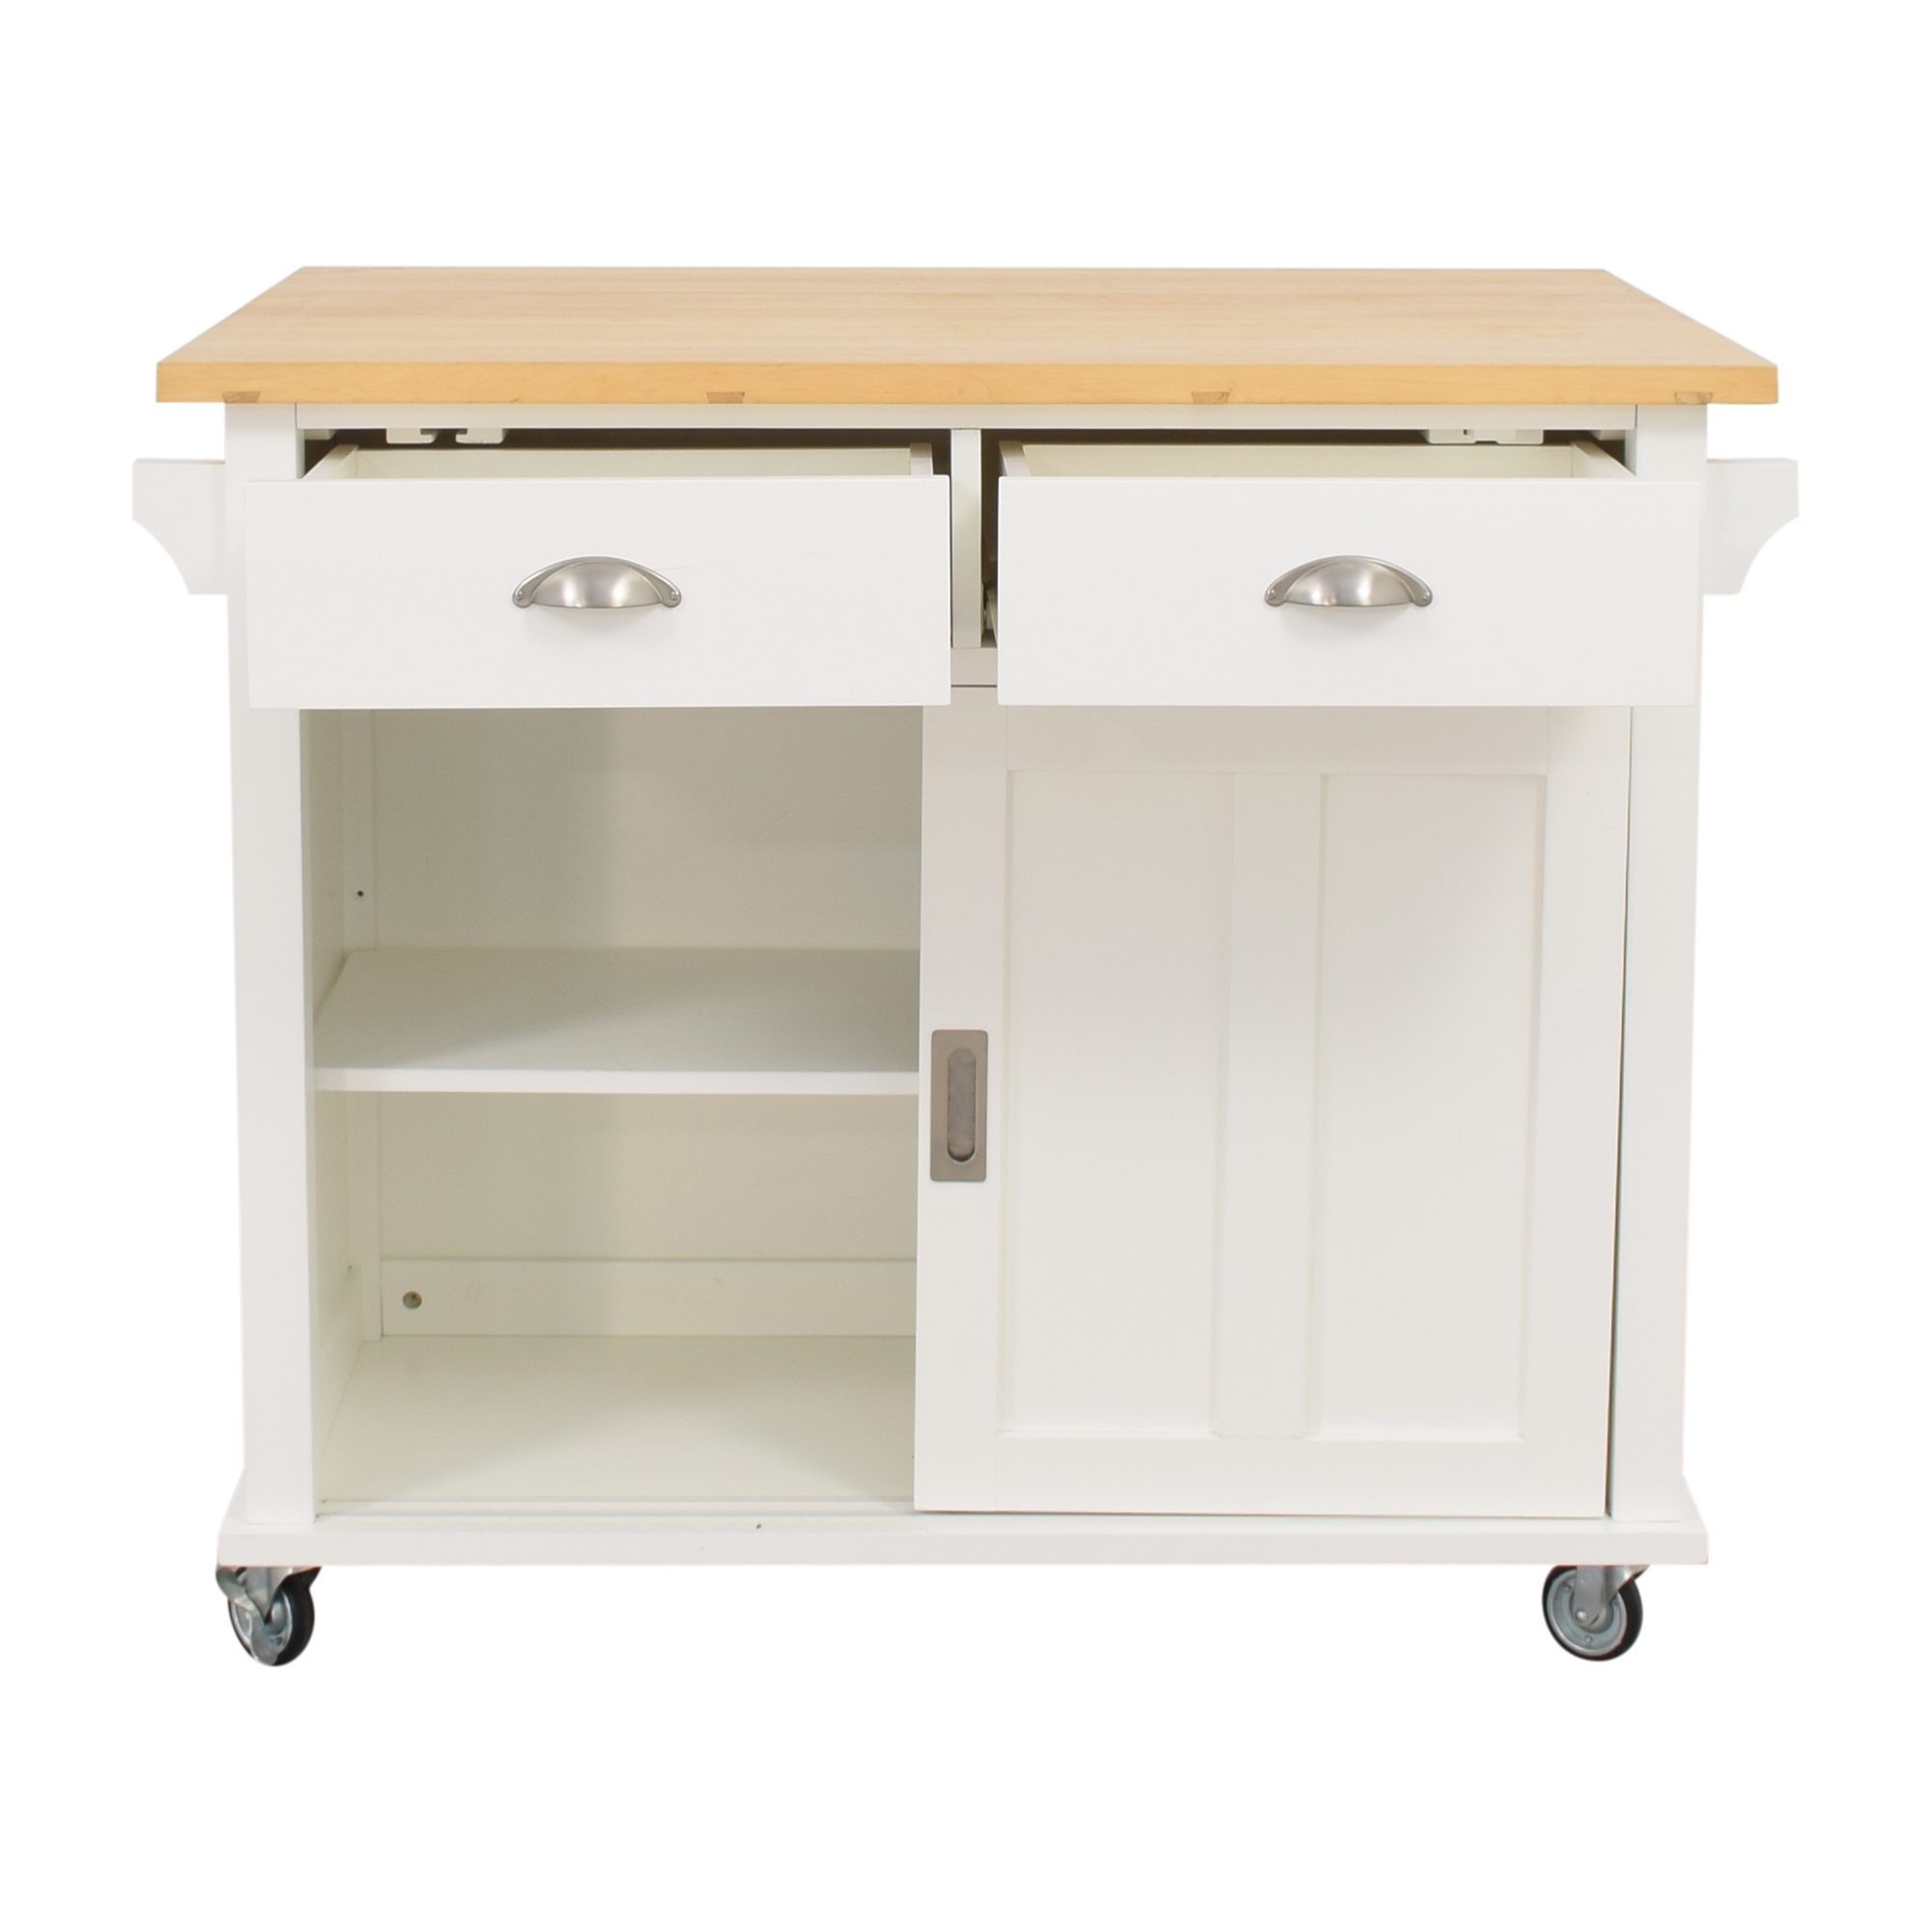 shop Crate & Barrel Belmont White Kitchen Island Crate & Barrel Tables